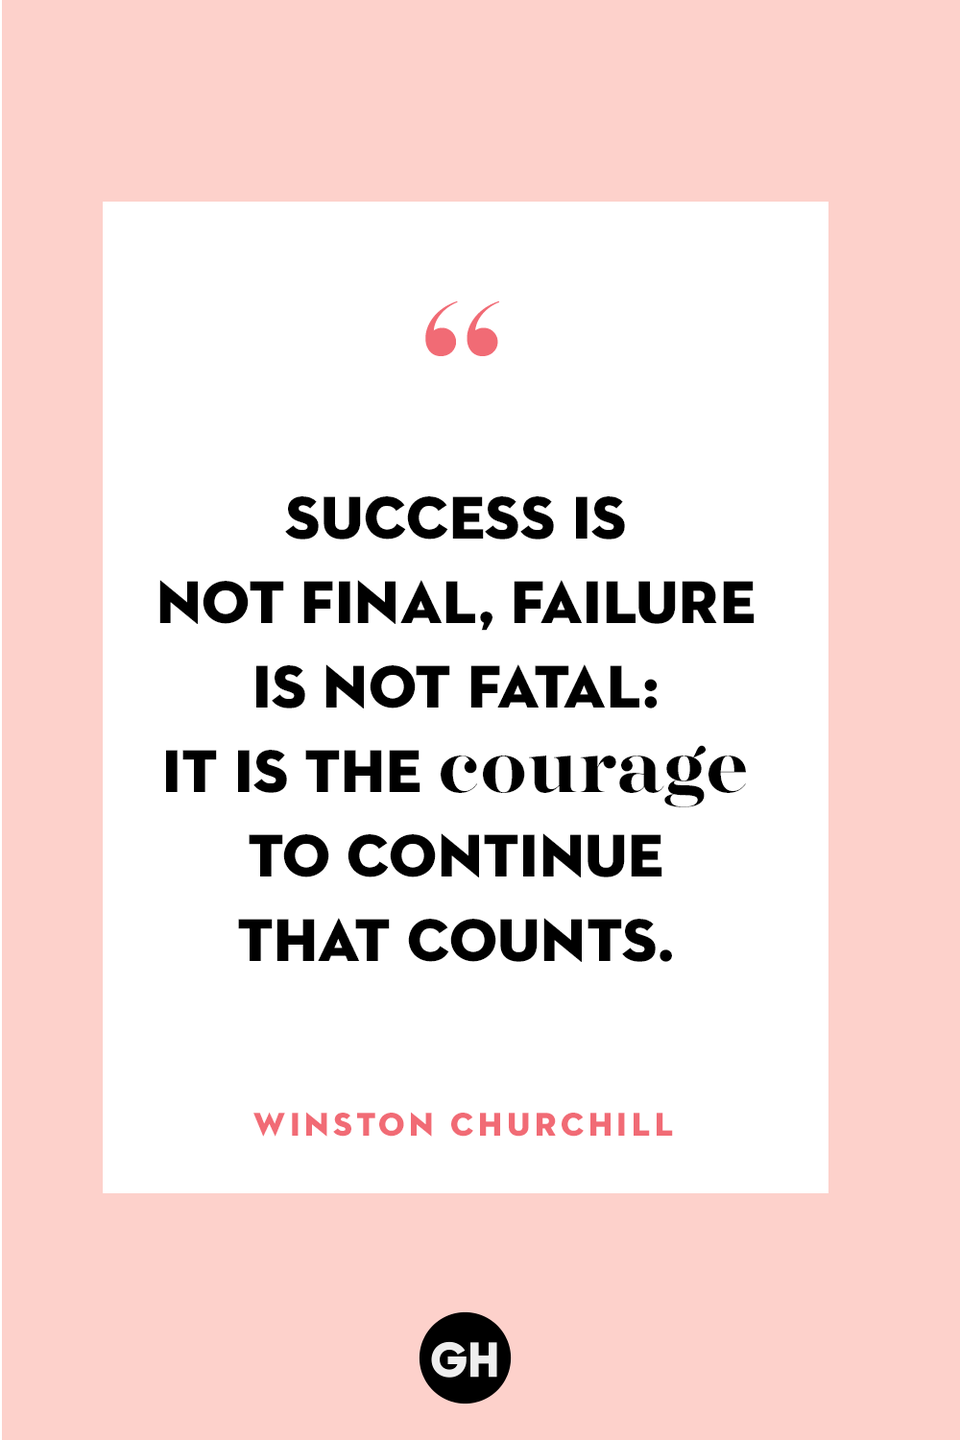 <p>Success is not final, failure is not fatal: it is the courage to continue that counts.</p>